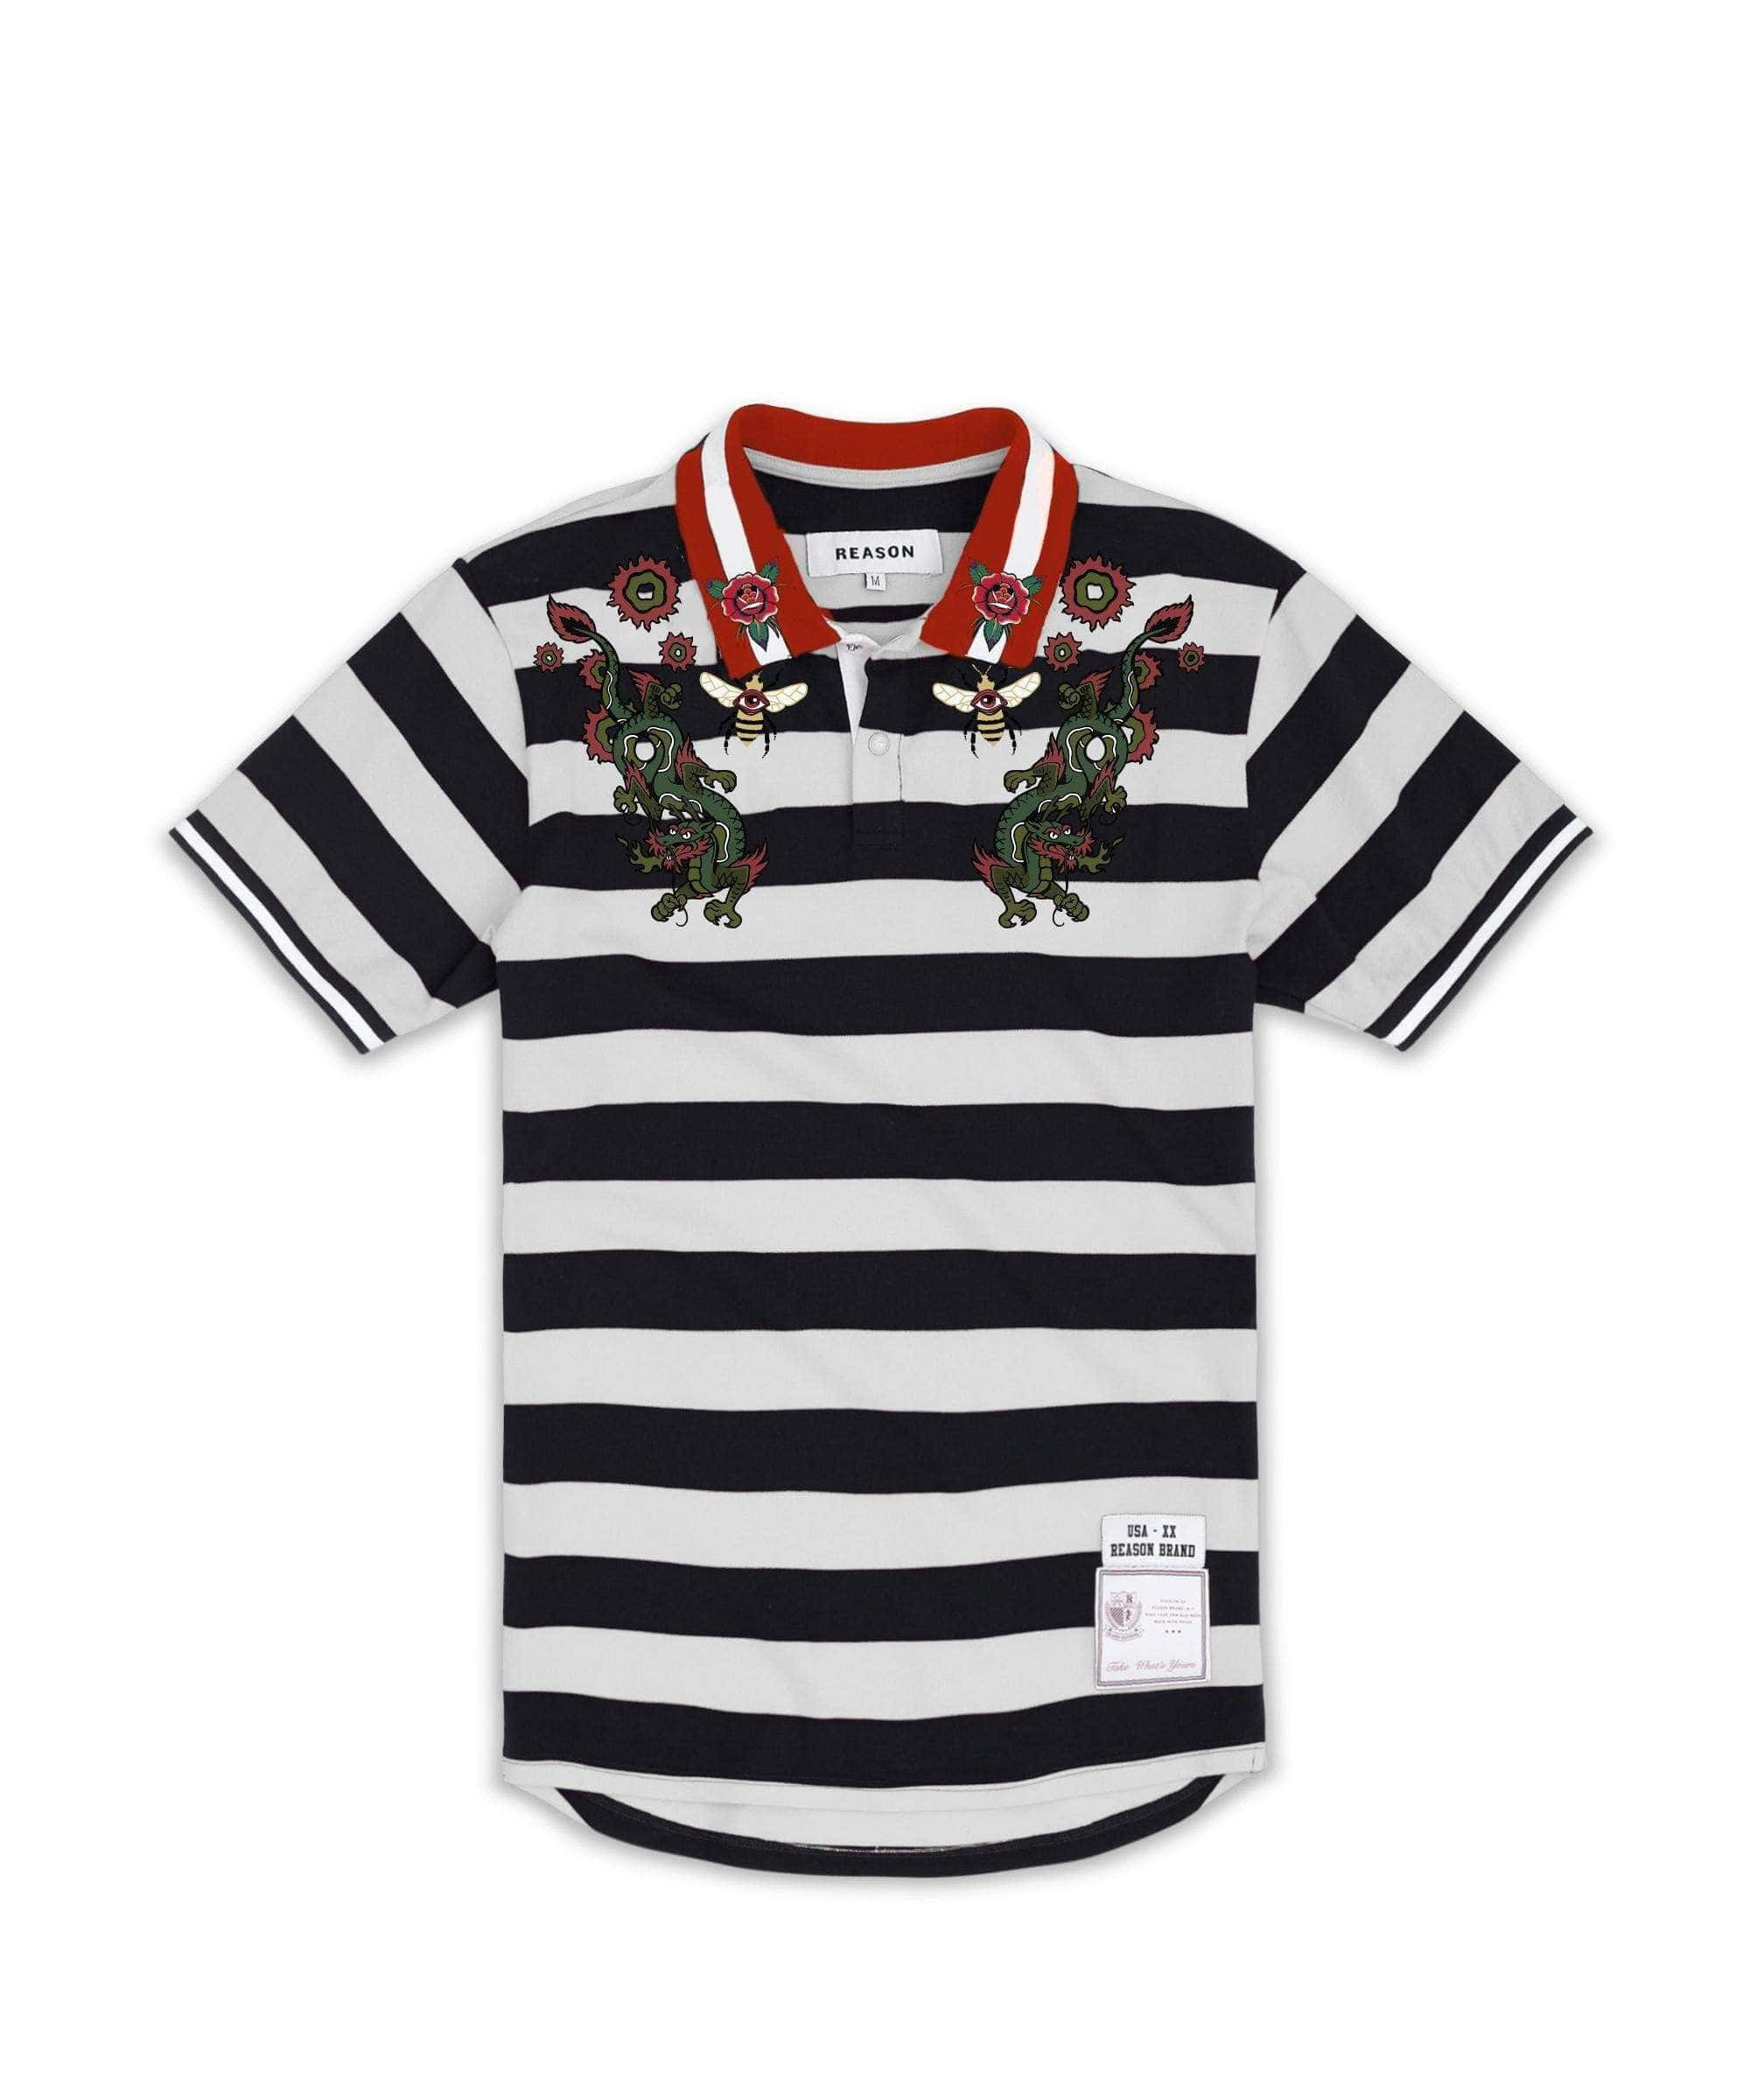 DRAGON POLO - BLACK - Reason Clothing